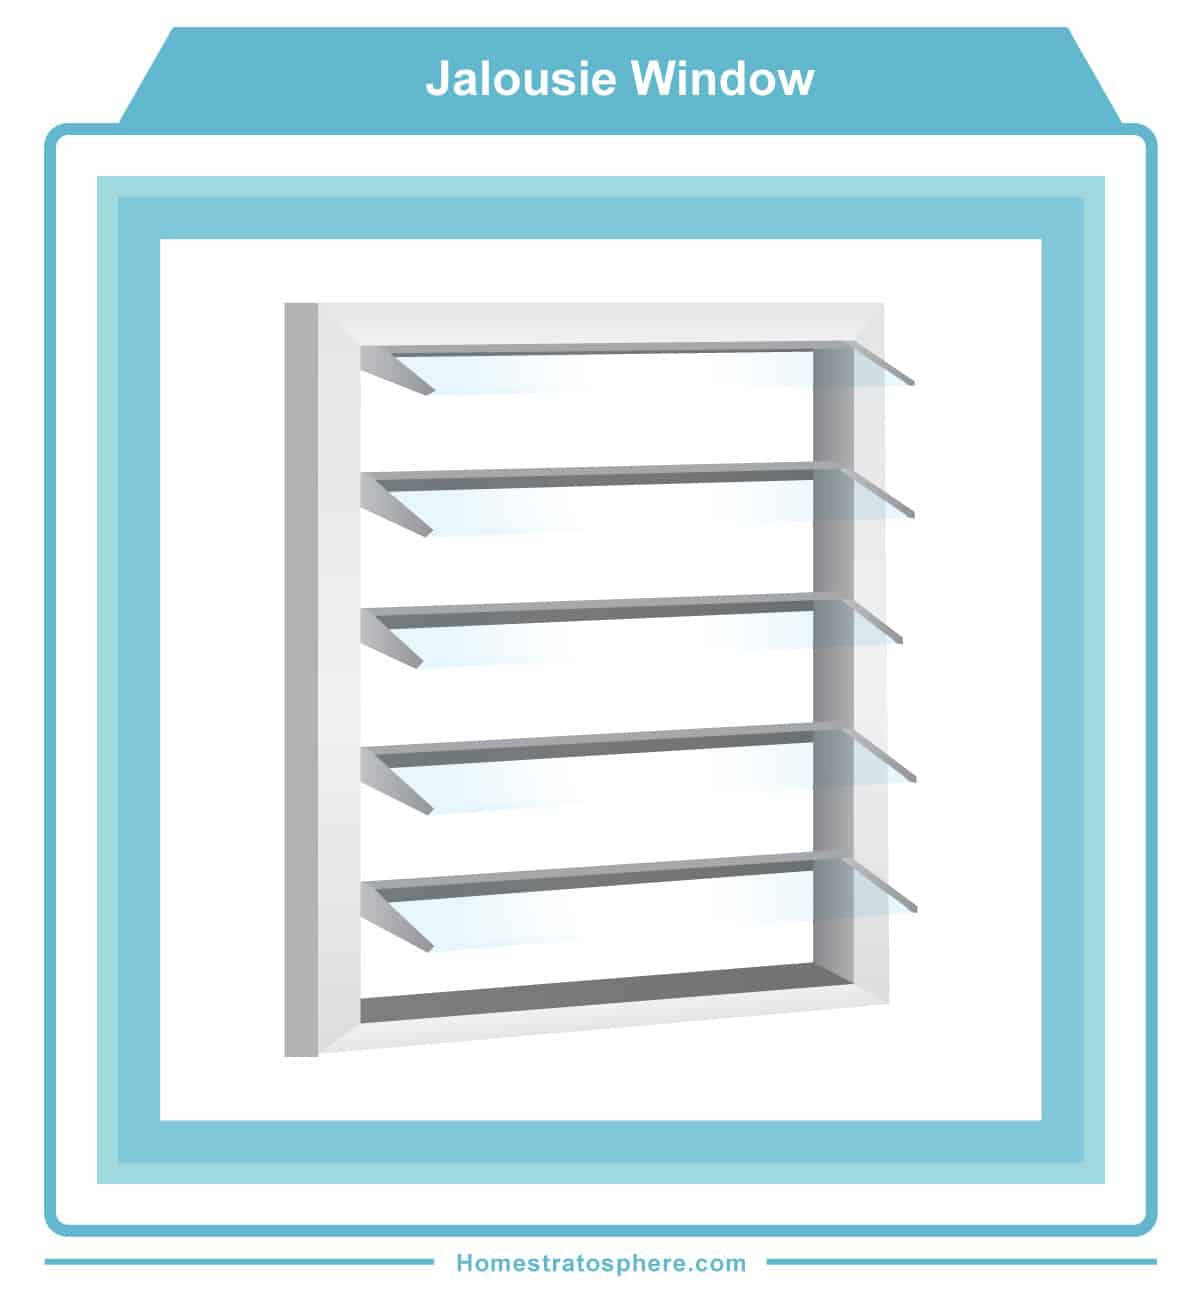 Jalousie style window (diagram)